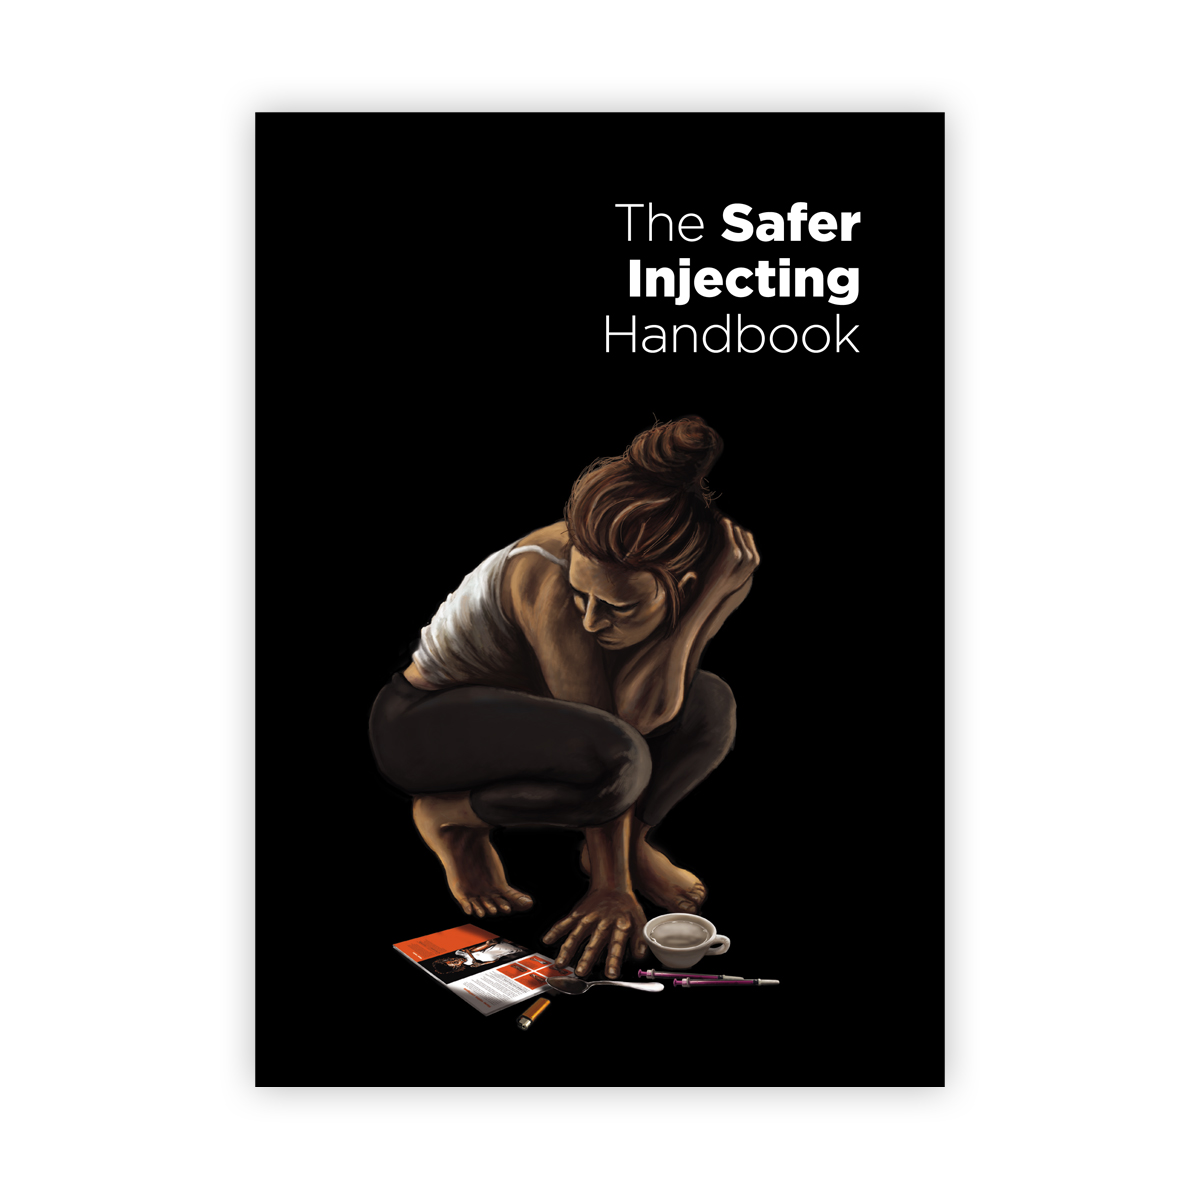 The Safer Injecting Handbook